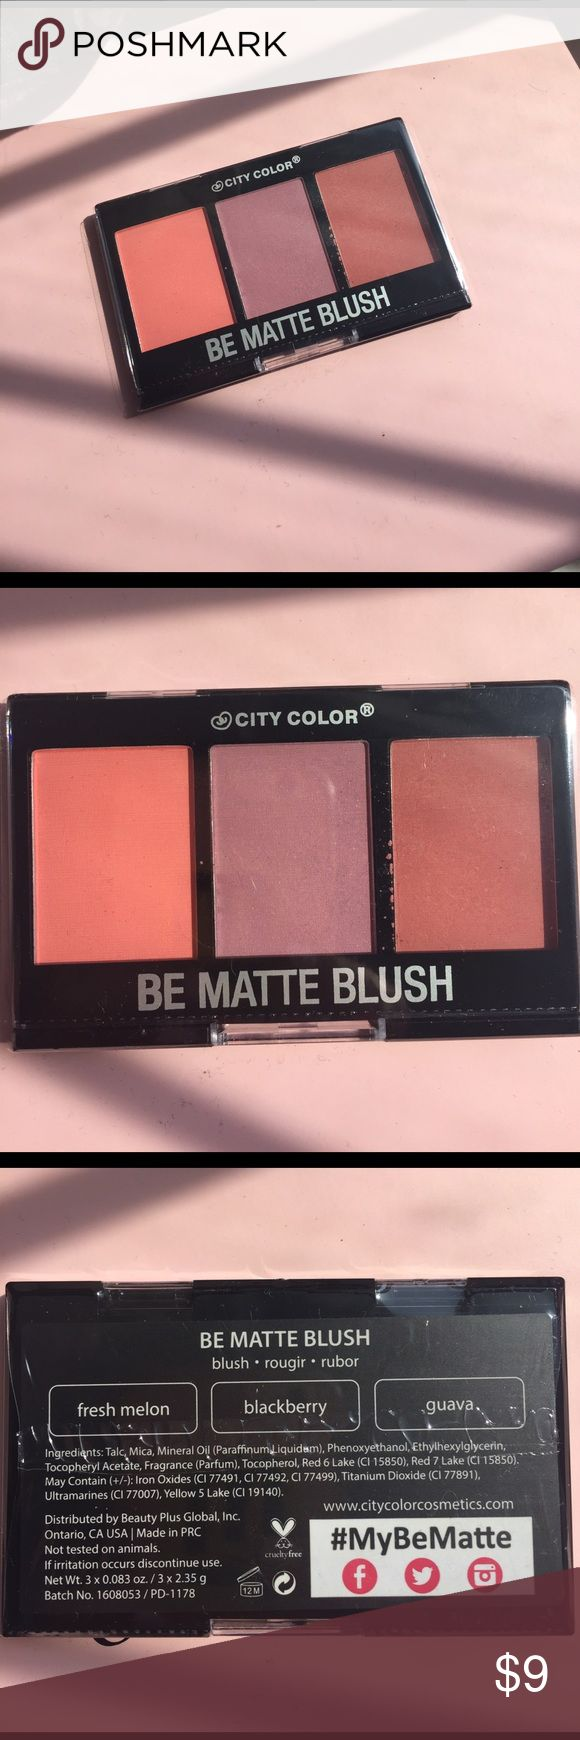 Summer Clearout🏖 Be Matte Blush Palette Unopened and never used blush palette with three shades as pictured. City Color Makeup Blush